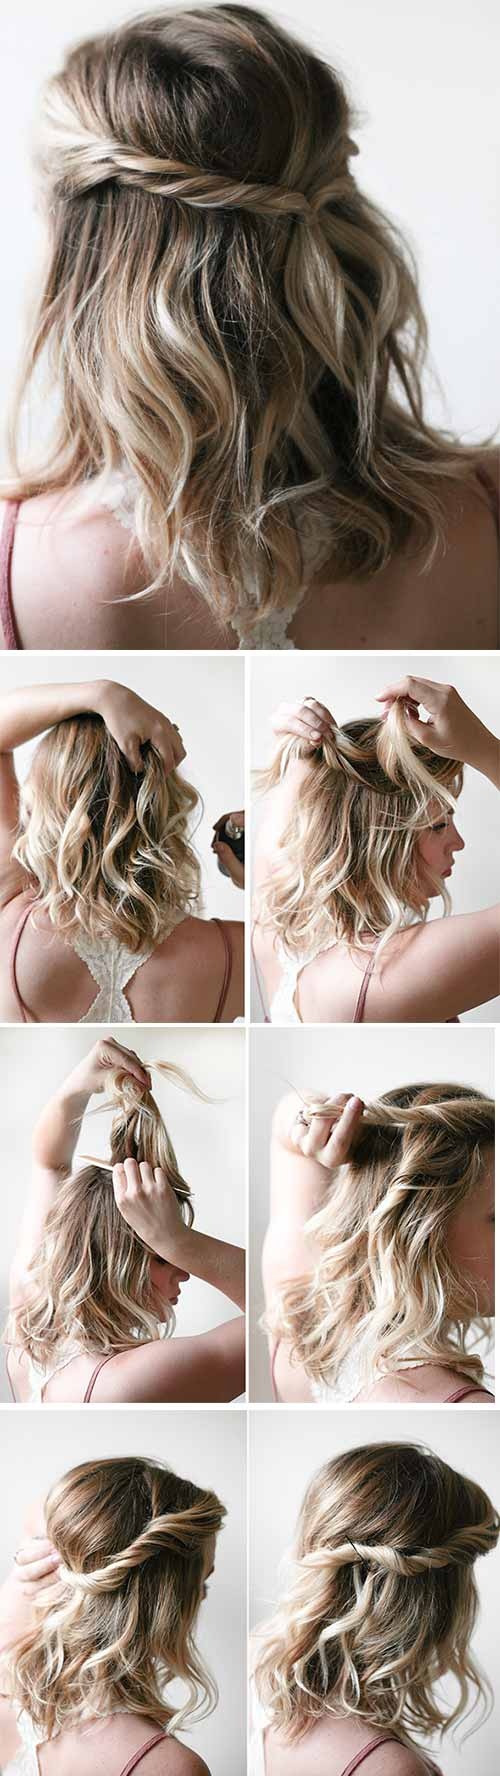 11 Incredible DIY Short Hairstyles - A Step-By-Step Guide